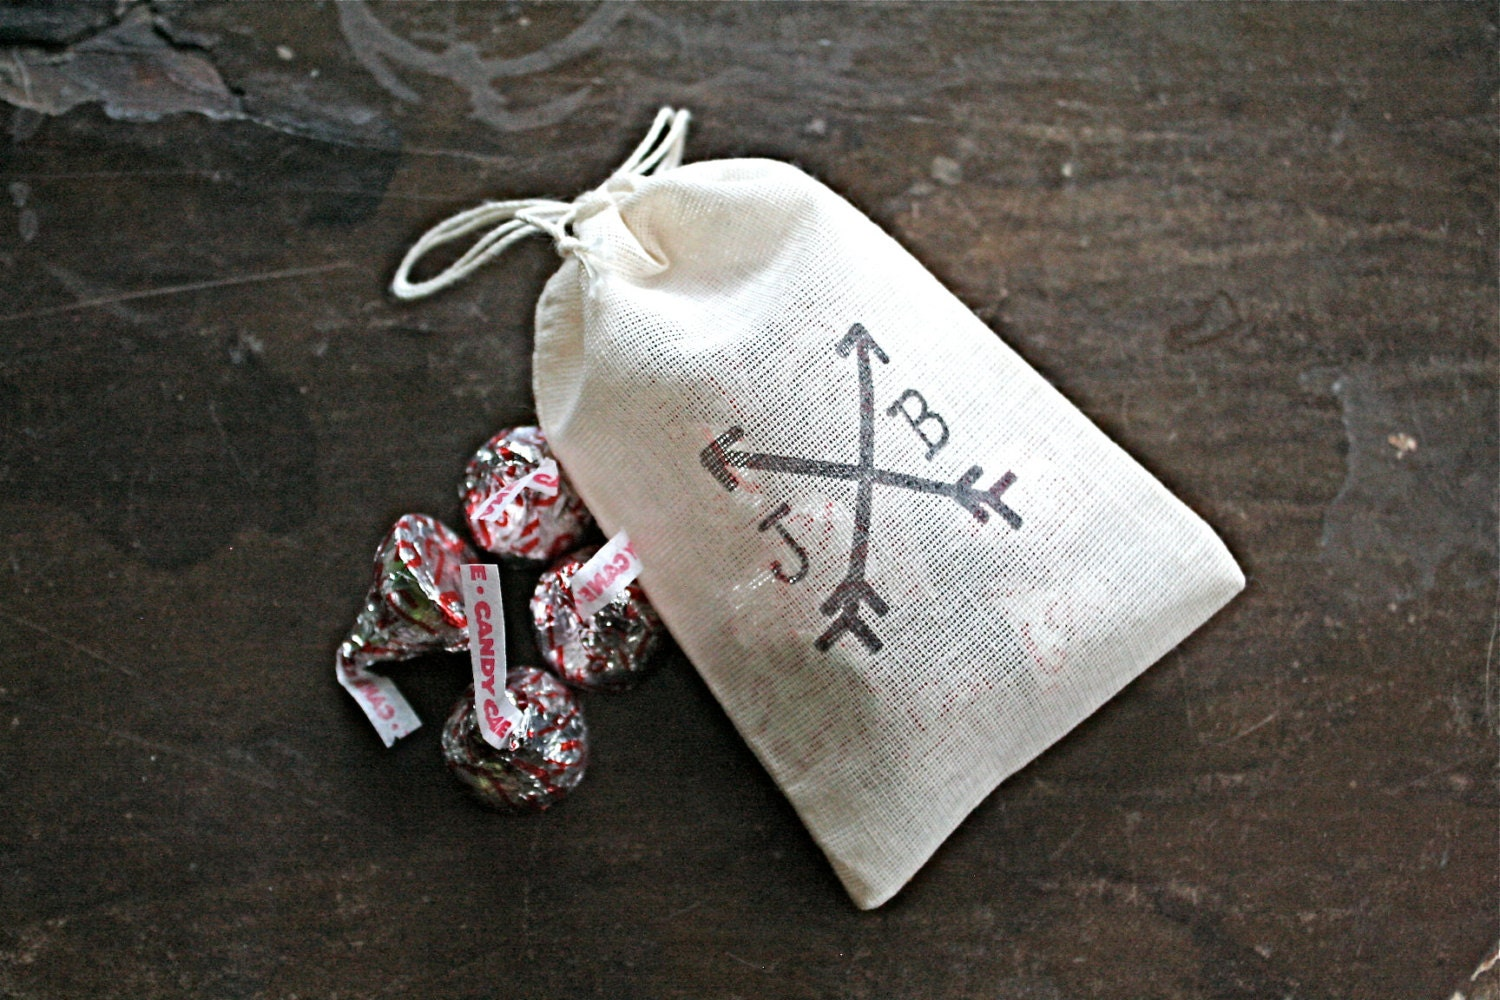 Personalized wedding favor bags 3x4.5. Set of 80 double